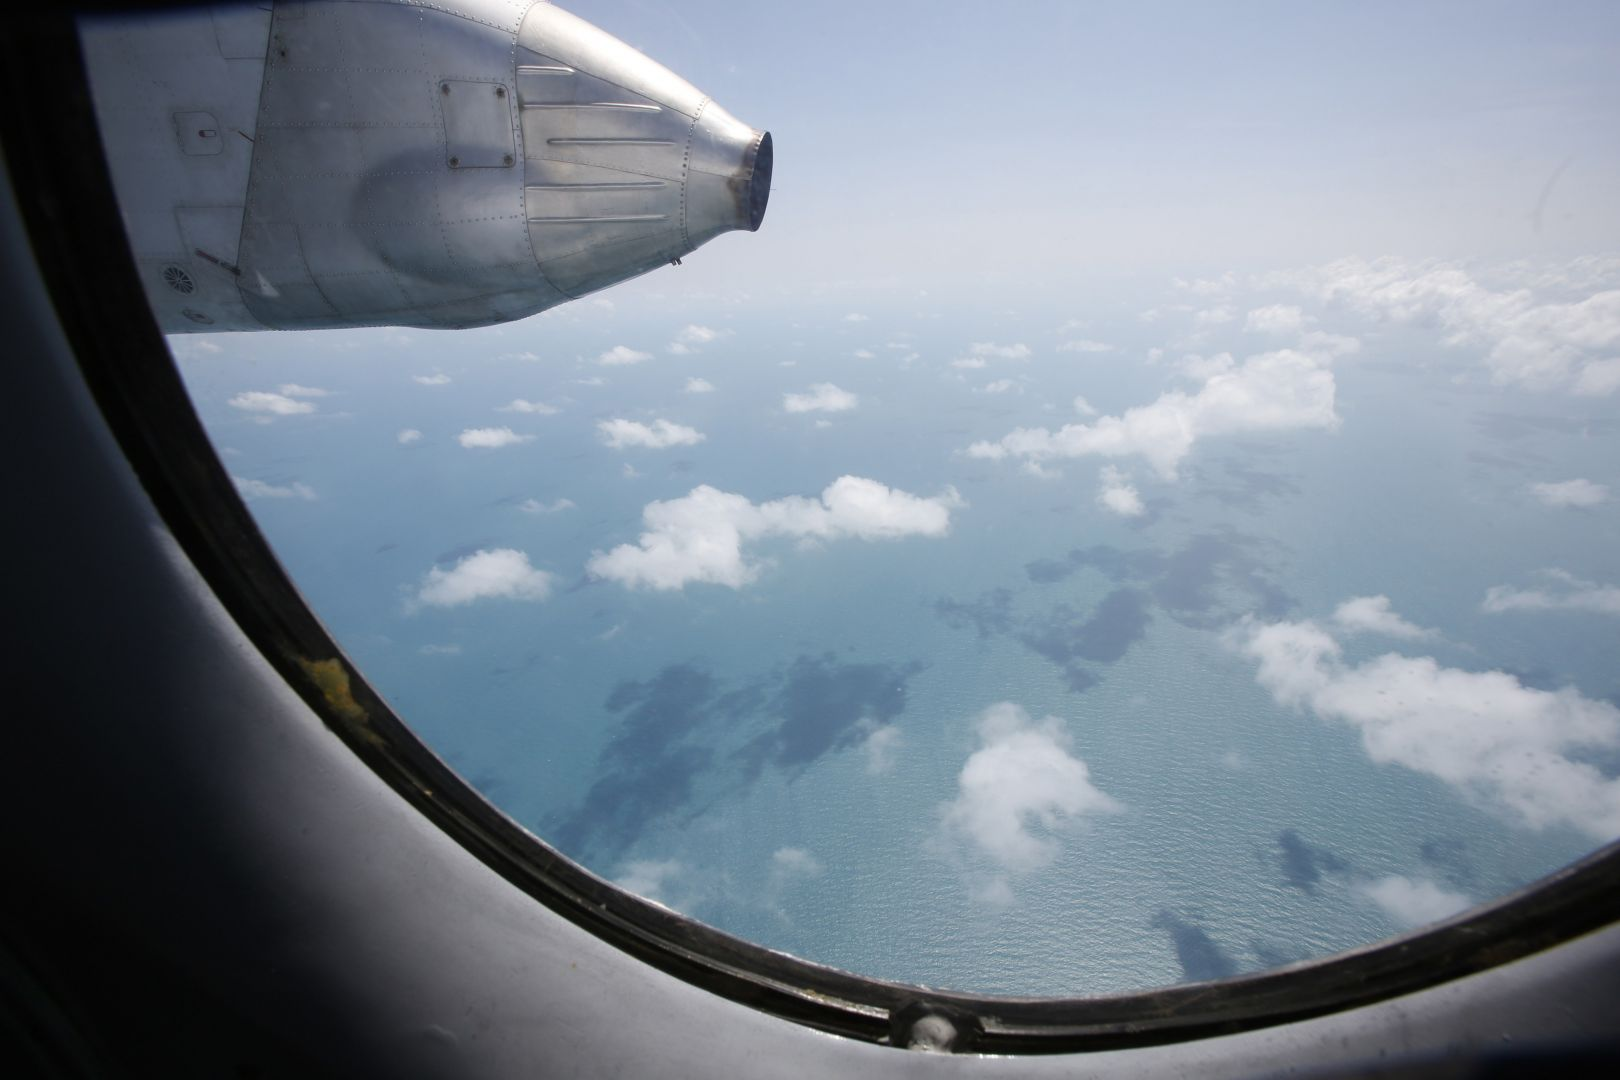 Clouds hover outside the window of a Vietnam Air Force search and rescue aircraft An-26, on a mission to find the missing Malaysia Airlines flight MH370